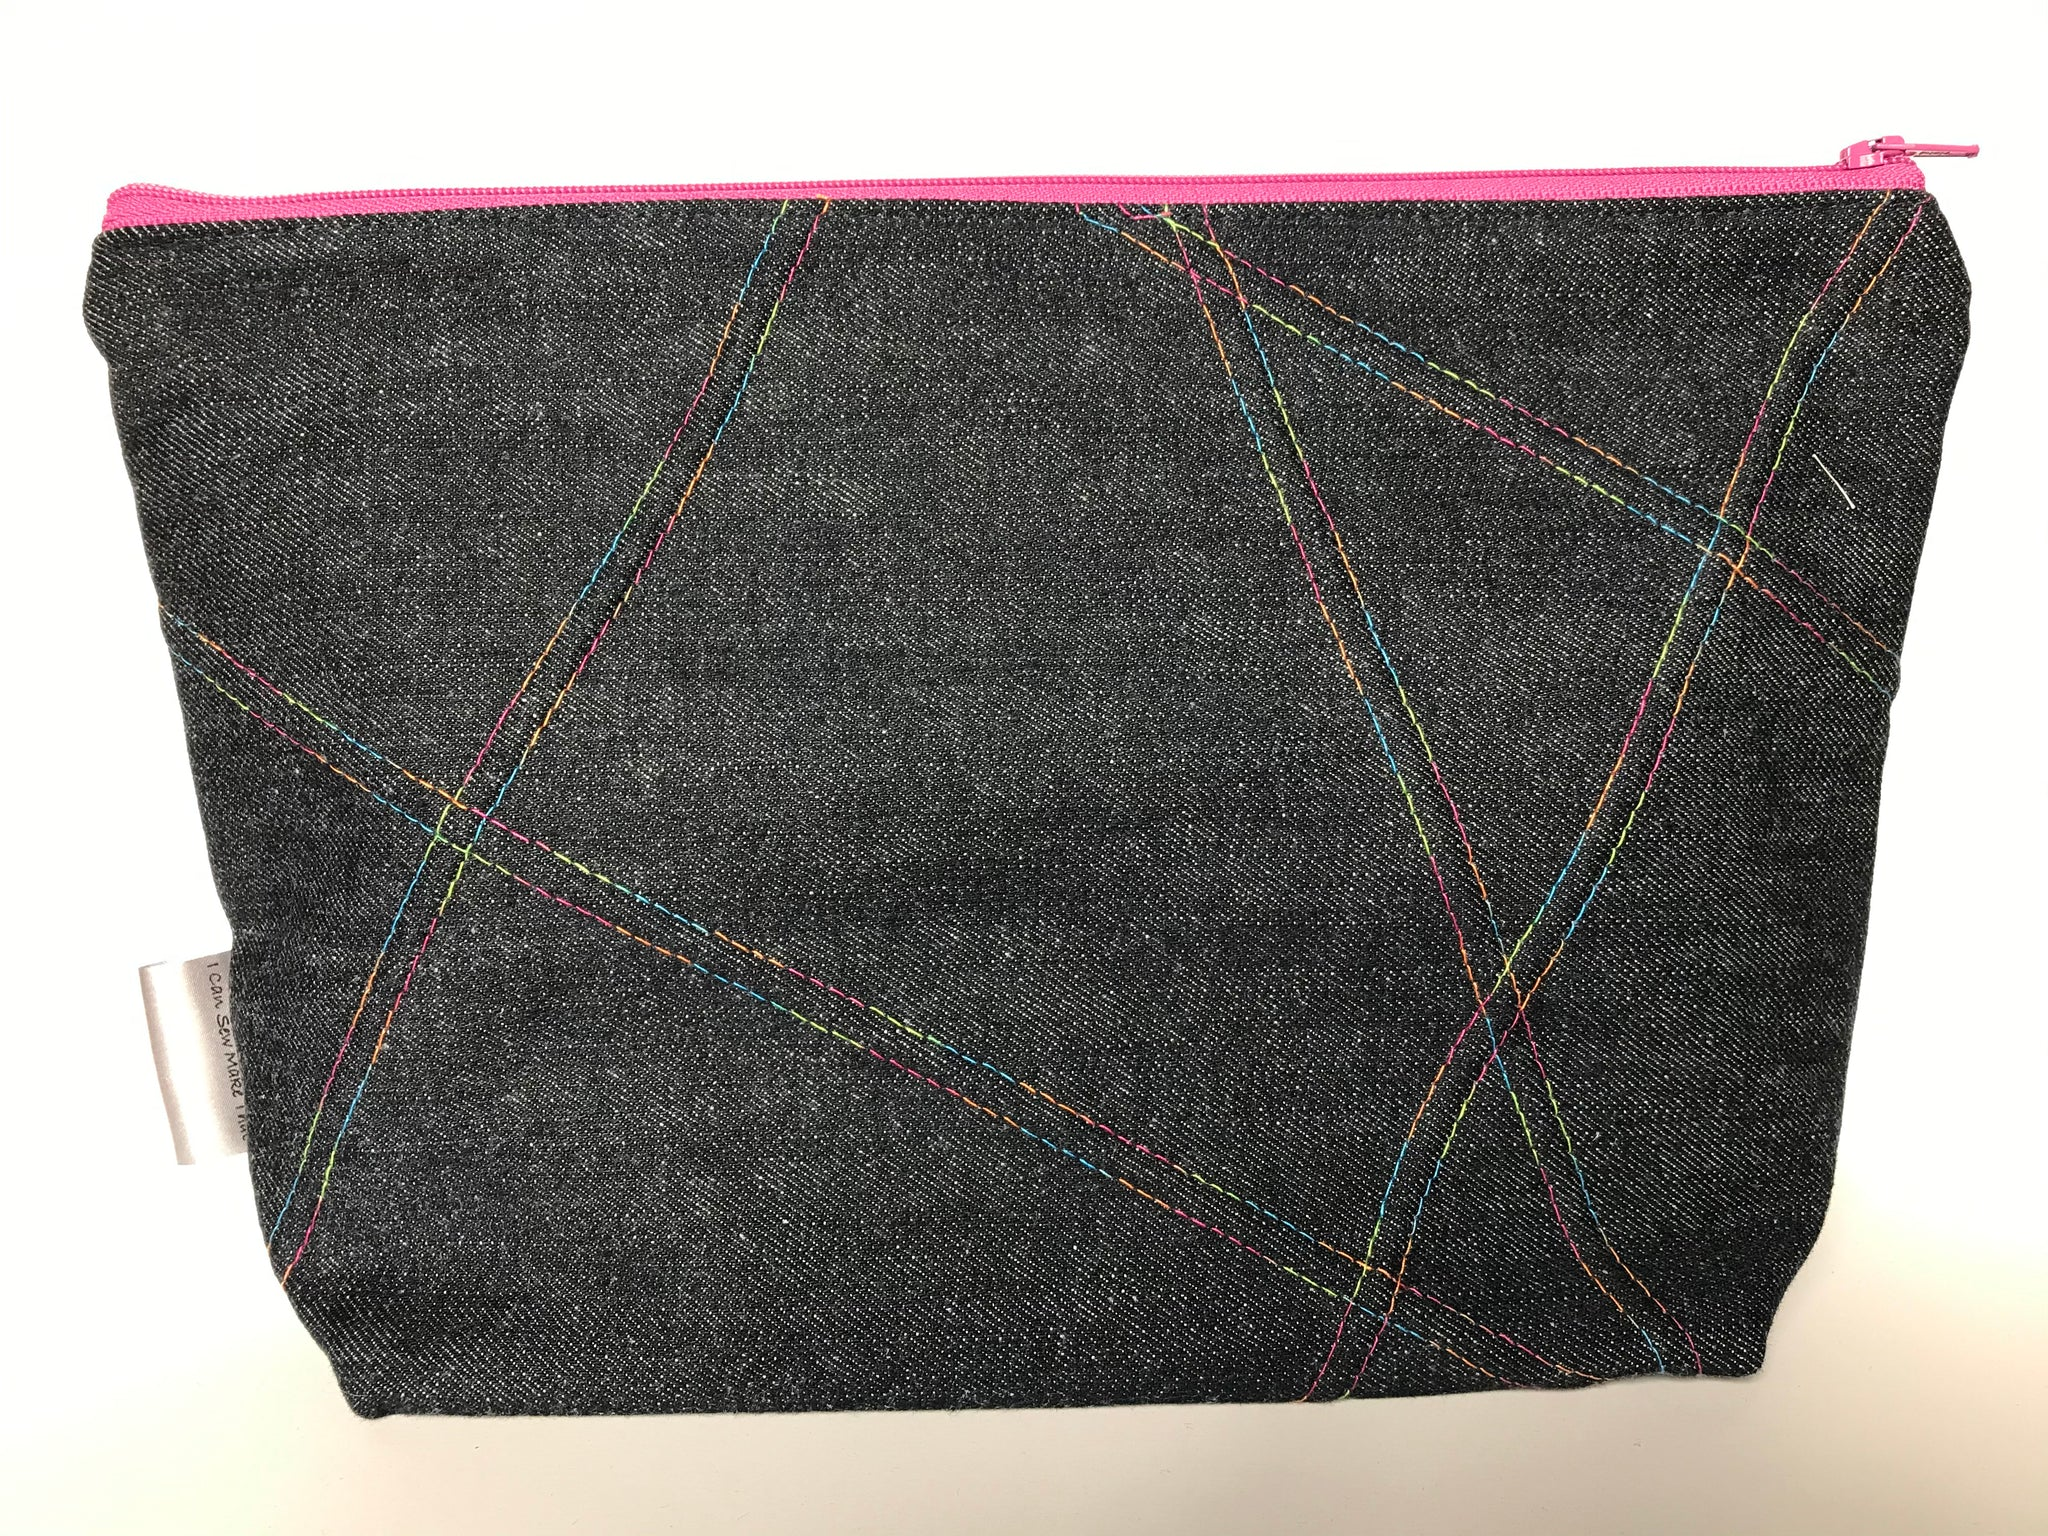 Small Zippered Project Bag - Variegated Thread Design